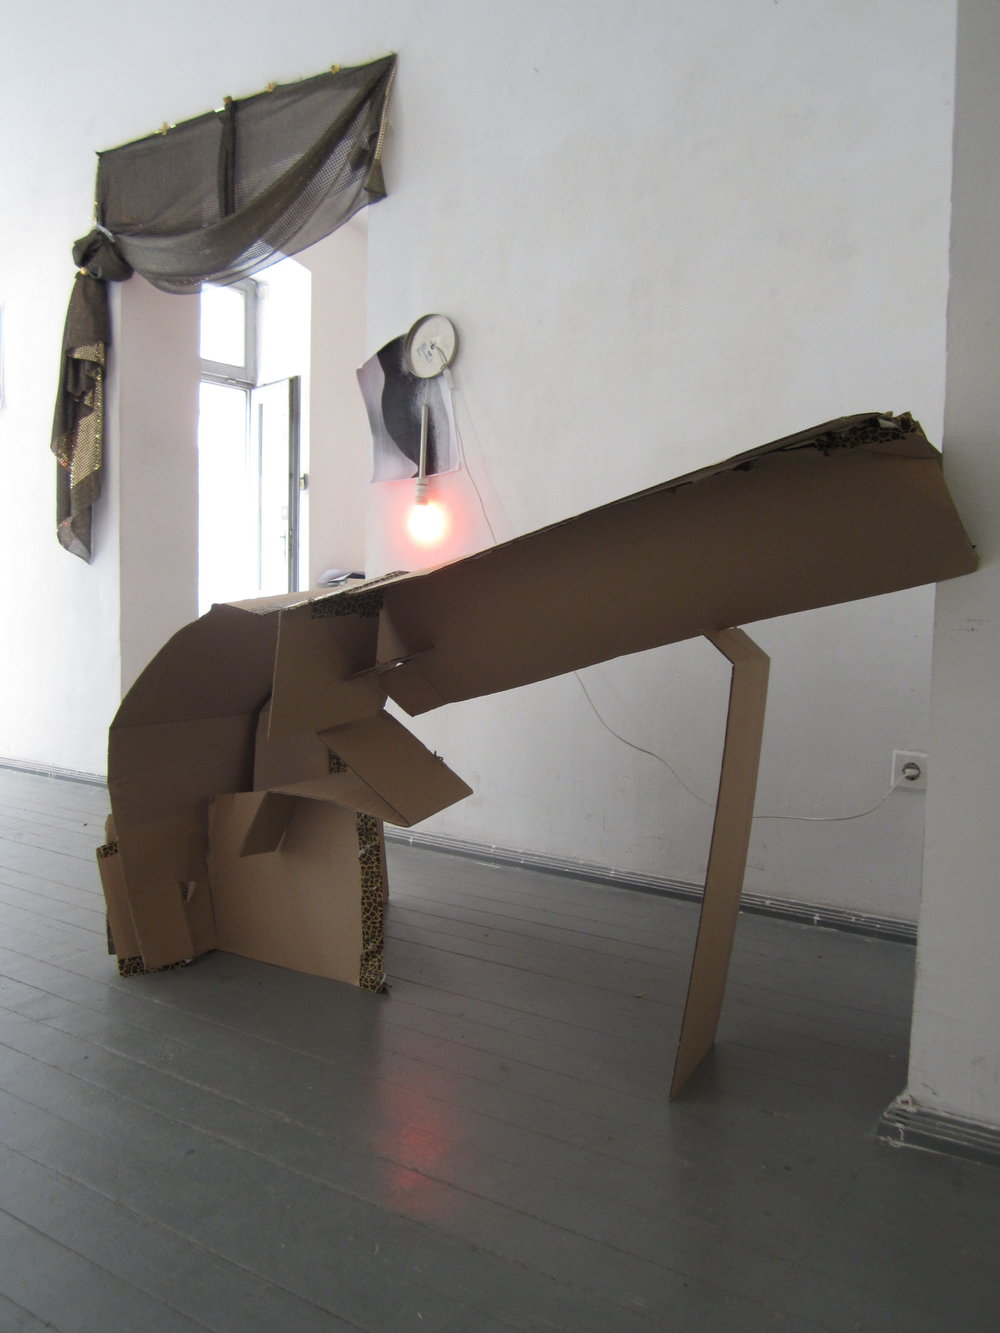 FlatPat (bent)   &   Member of The Family   - installation view